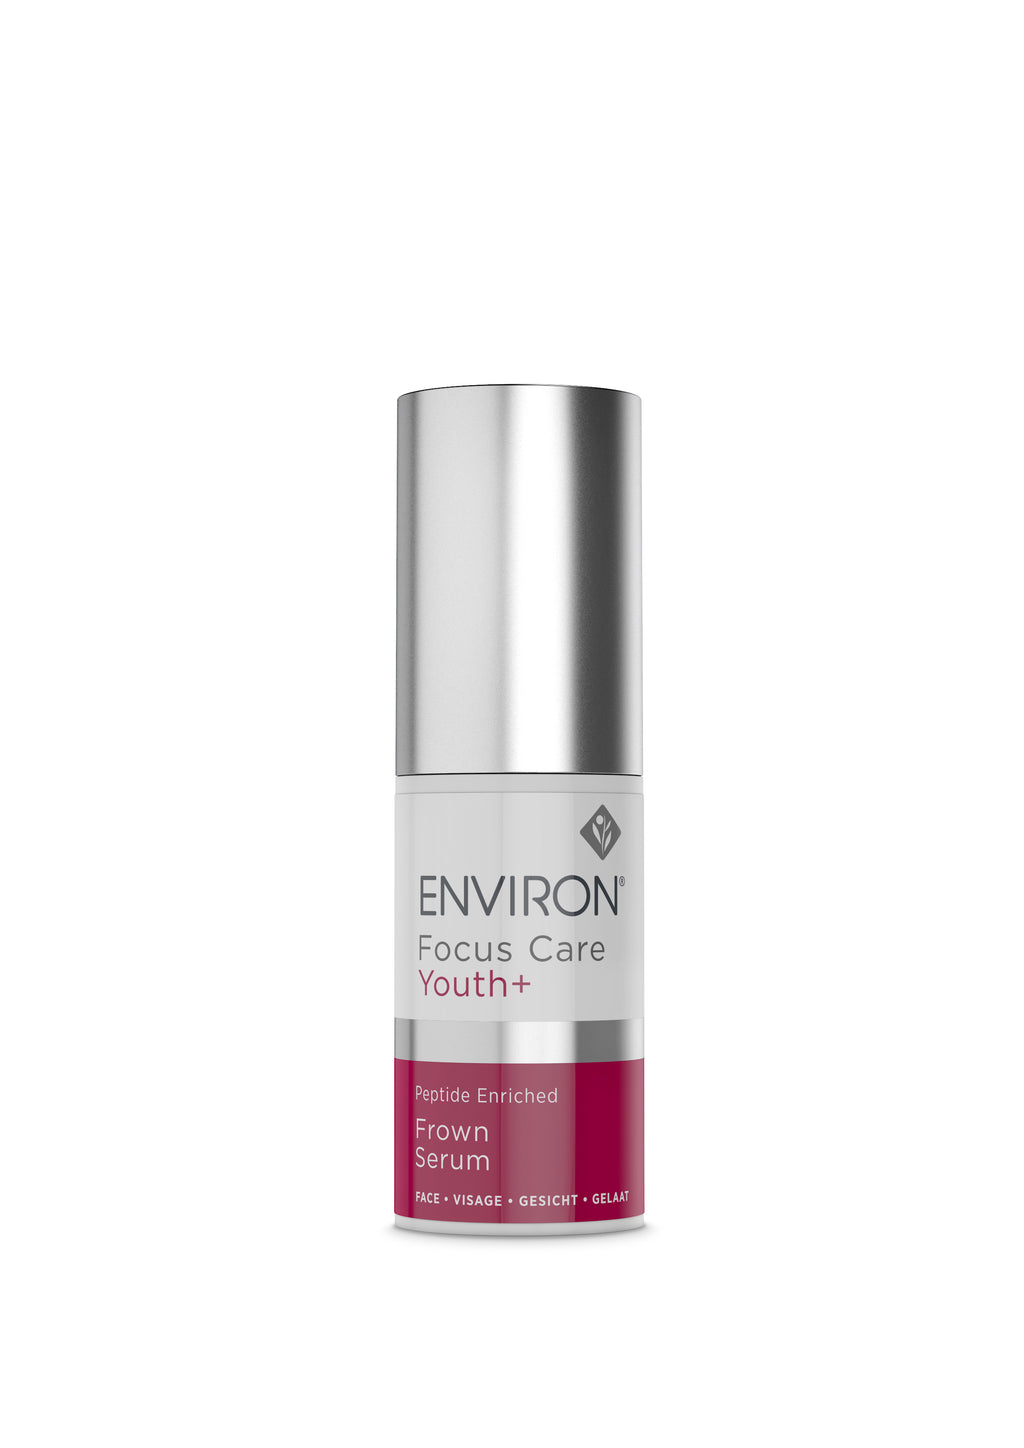 Peptide-Enriched Frown Serum